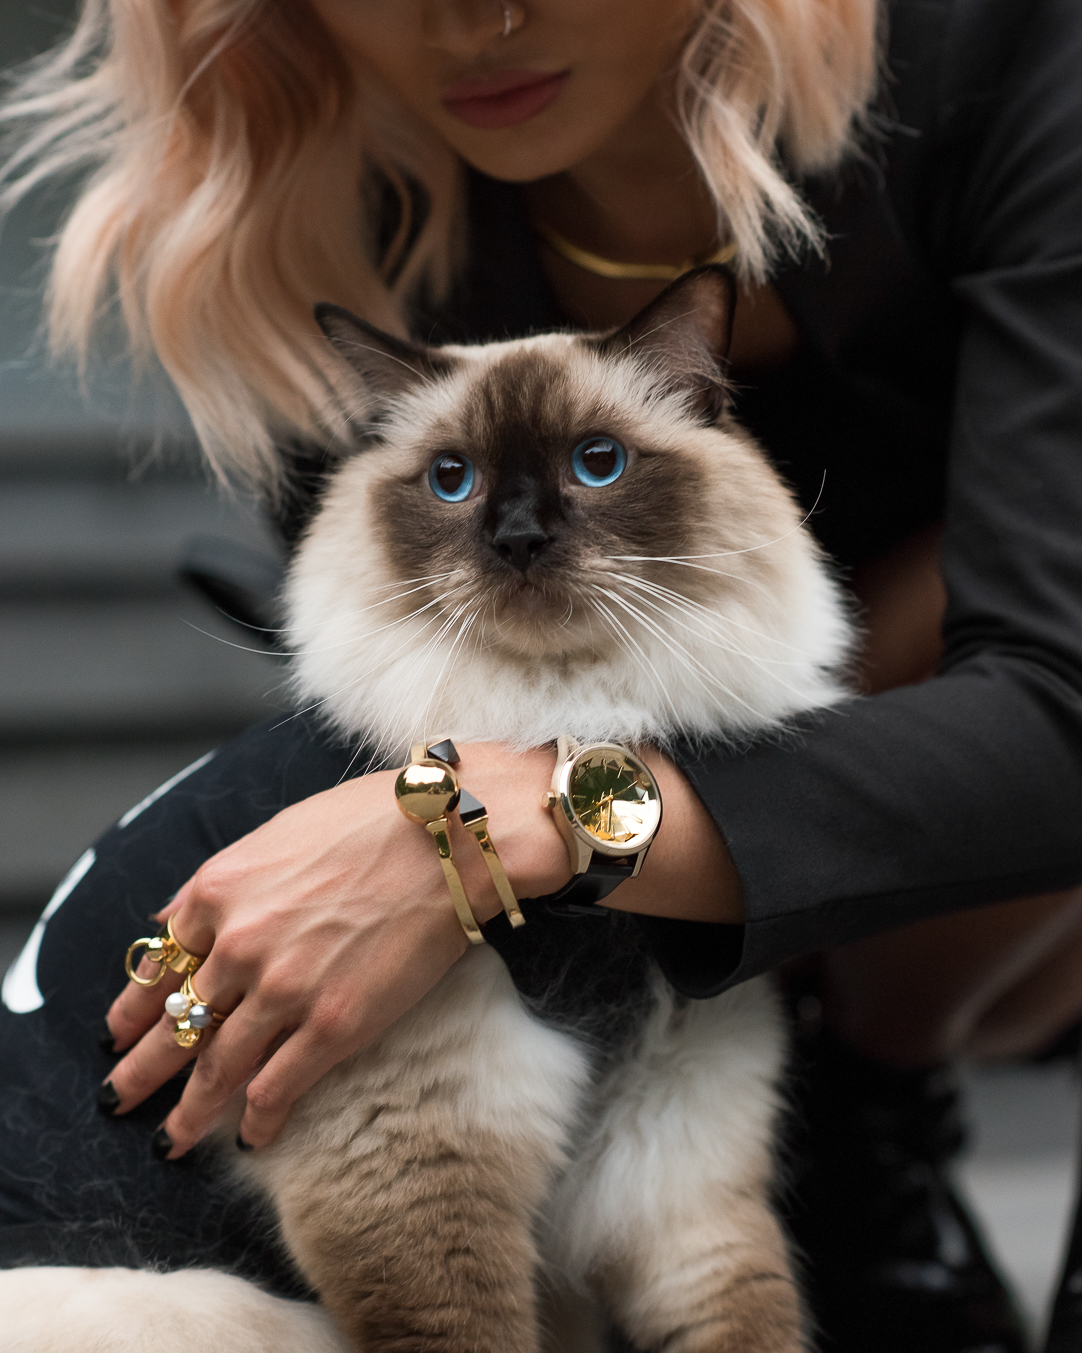 Micah-Gianneli-Karl-Lagerfeld-Choupette-Cat-Feline-Fashion-Editorial-Campaign-Ragdoll-Cat